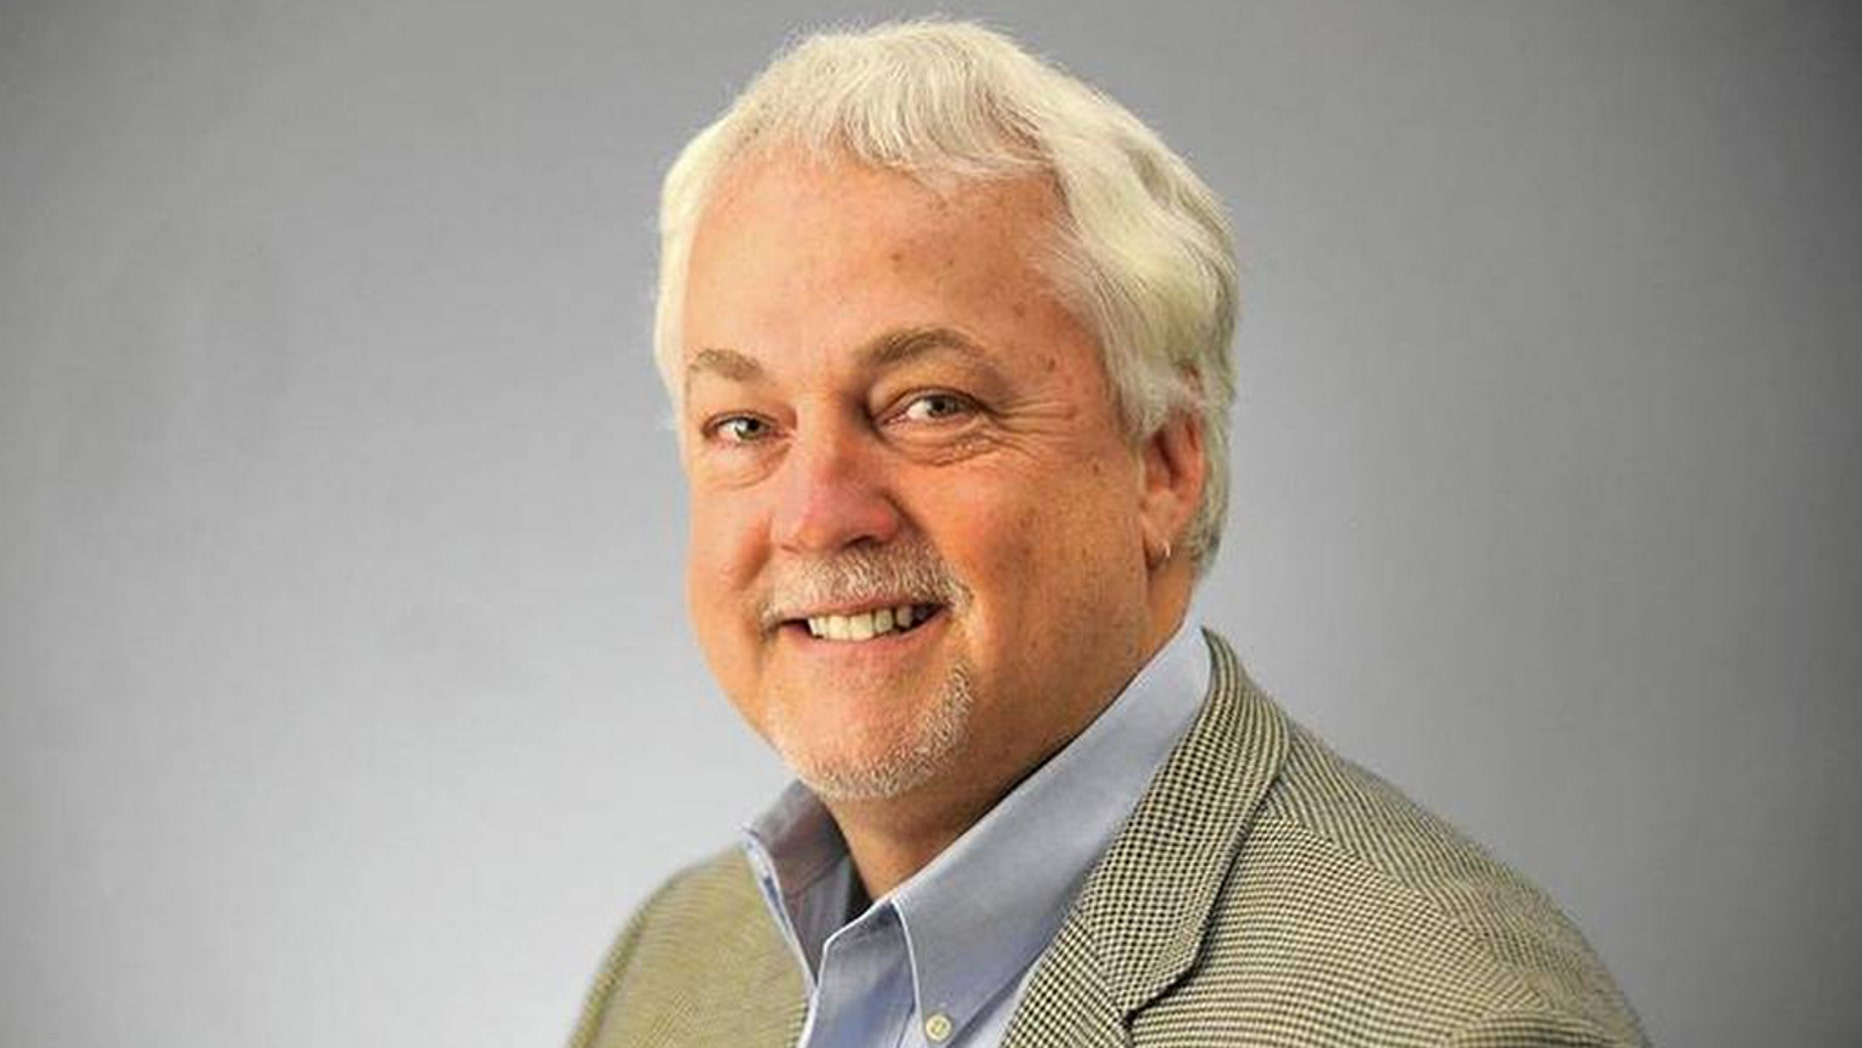 Rob Hiaasen was reportedly identified as one of the five victims in Thursday's shooting attack in Annapolis, Maryland.